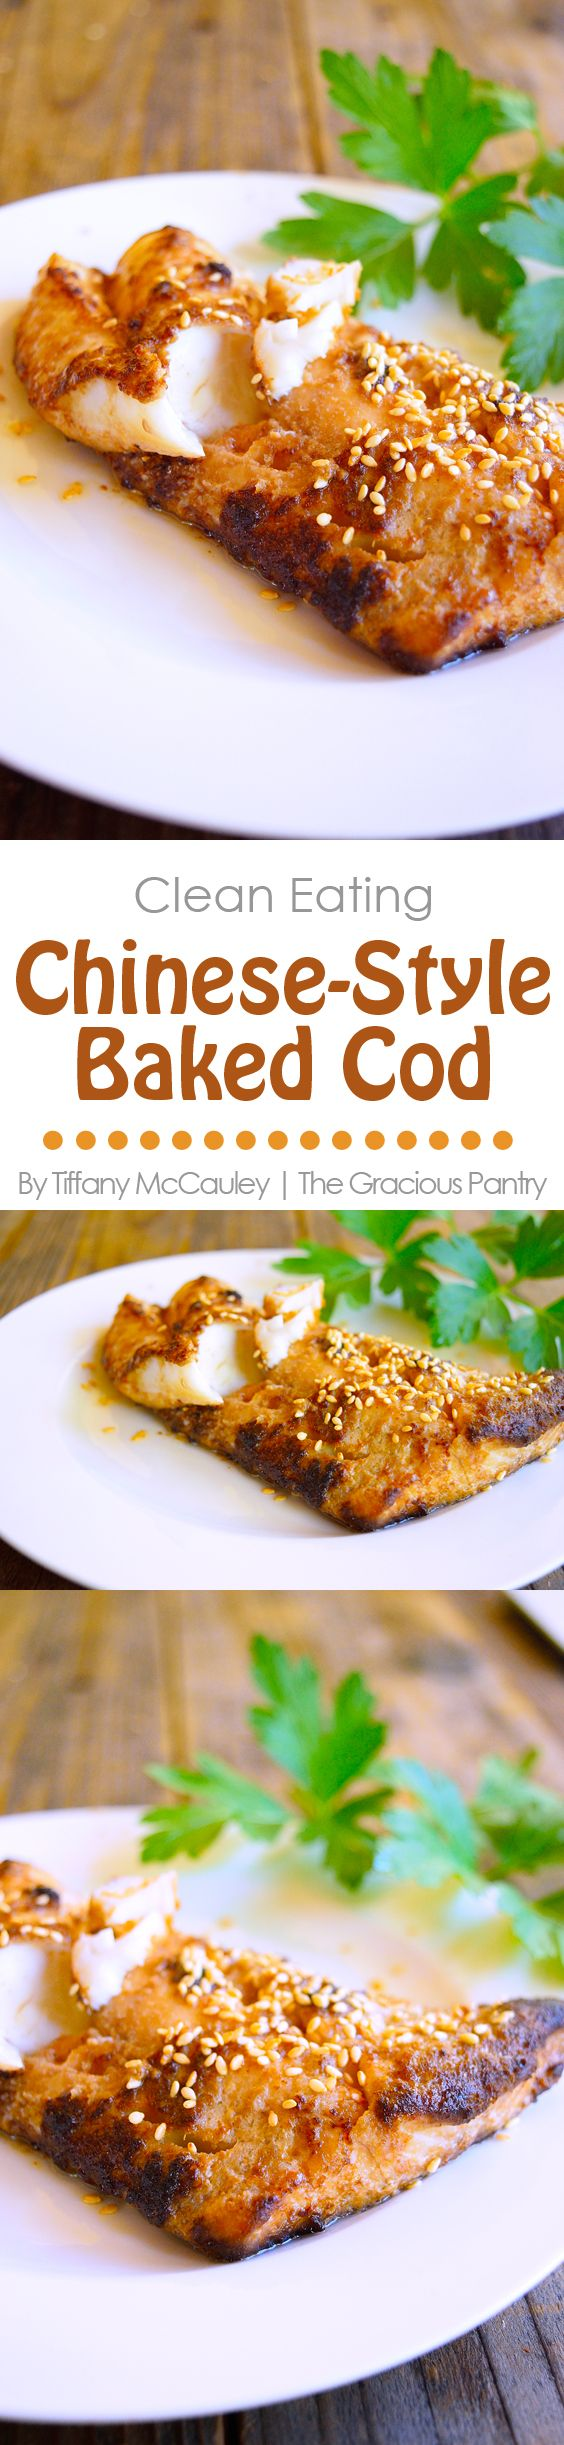 Clean Eating Recipes | Cod Recipes | Seafood Recipes | Fish Recipes ~ https://www.thegraciouspantry.com